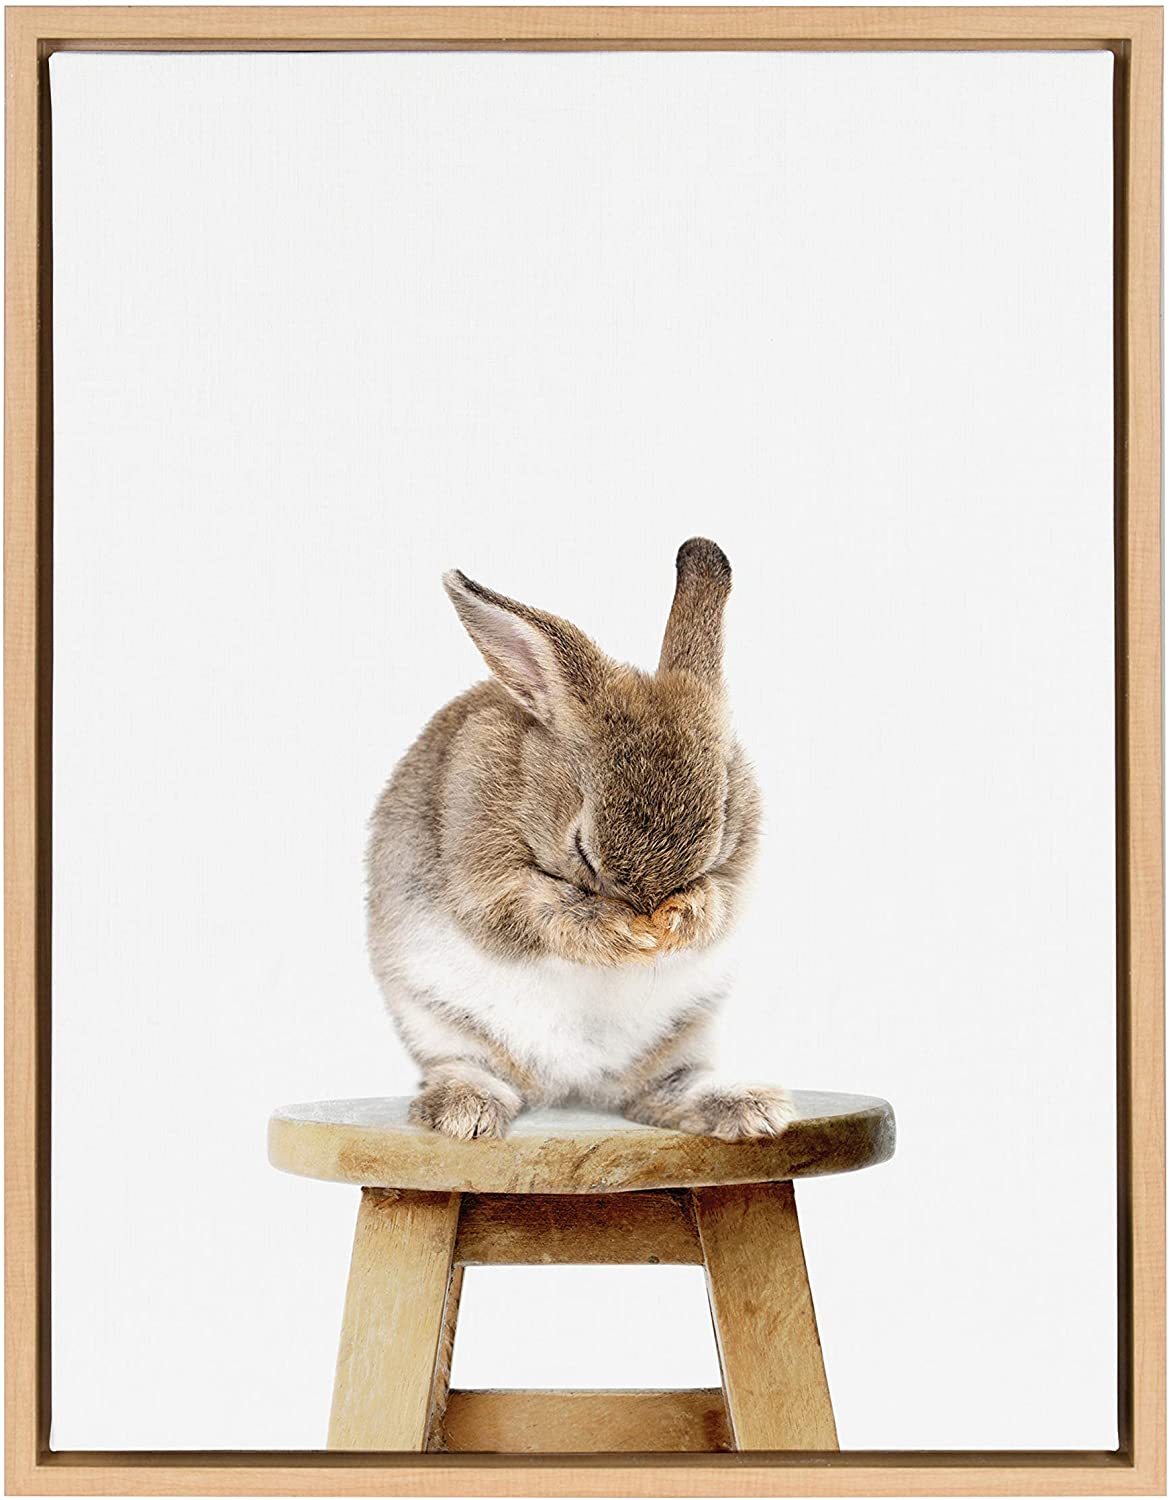 Kate and Laurel Sylvie Shy Bunny Rabbit Animal Print Portrait Framed Canvas Wall Art by Amy Peterson, 18x24 Natural